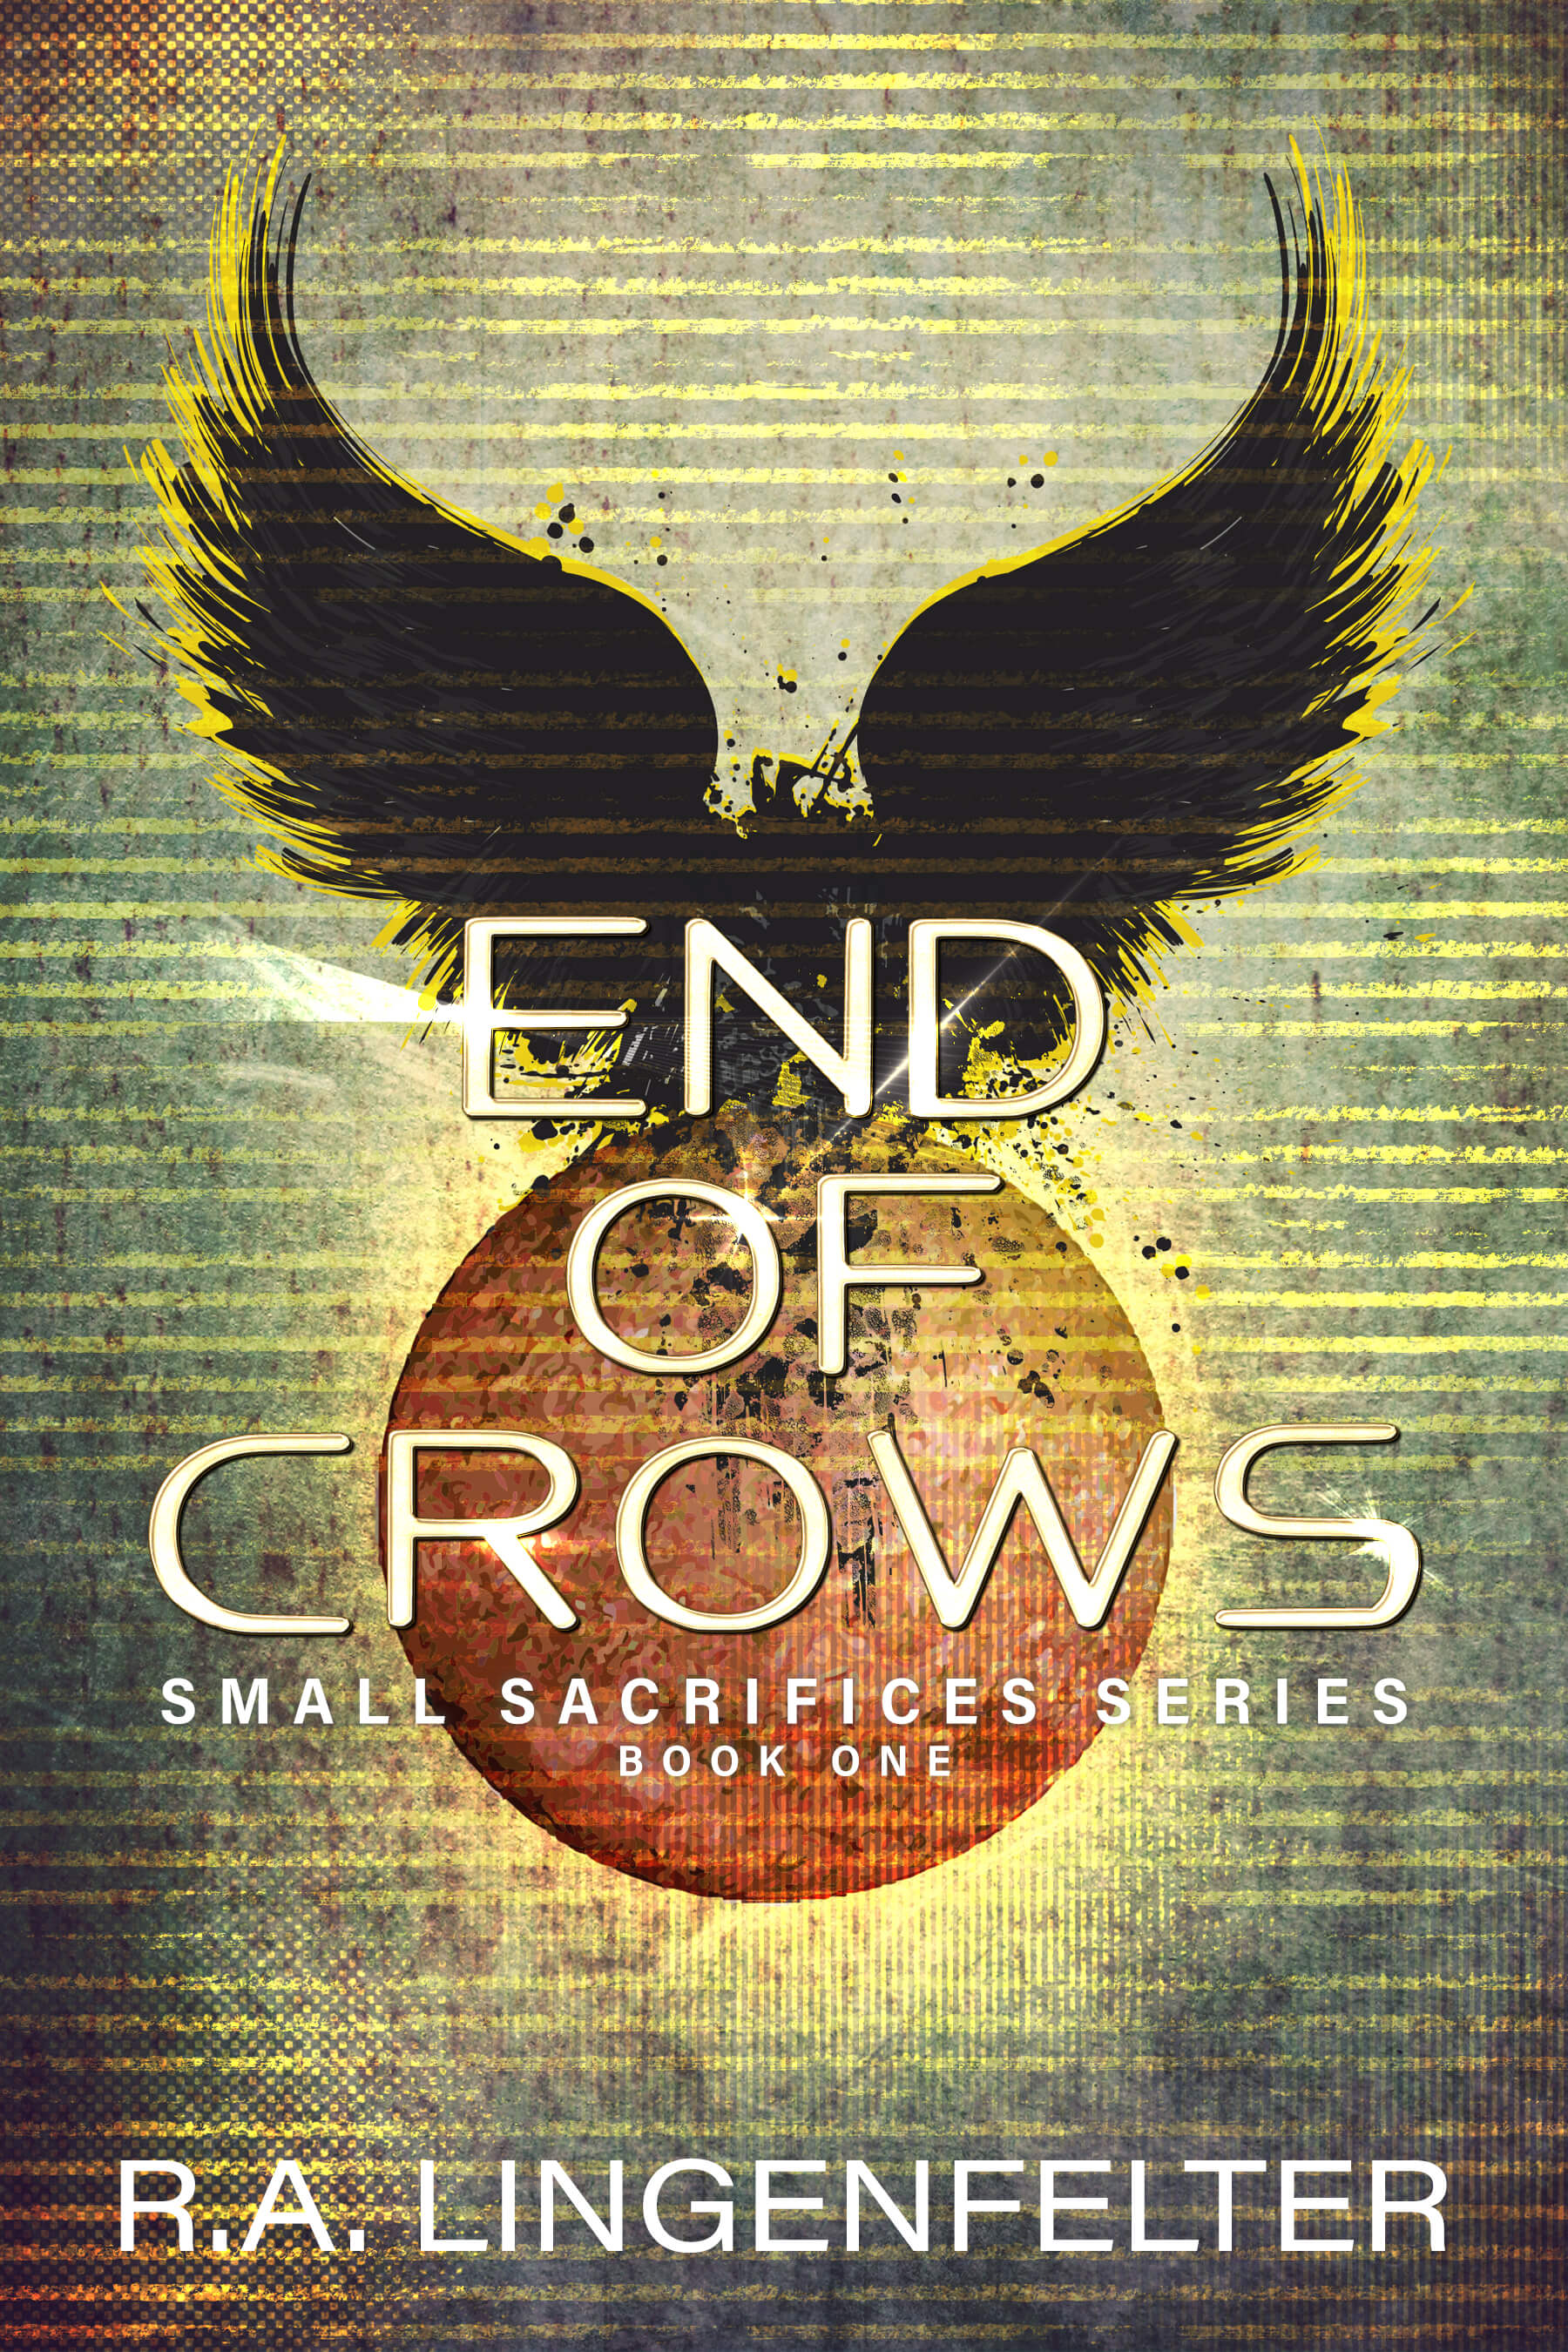 End of Crows; Small Sacrifices Series